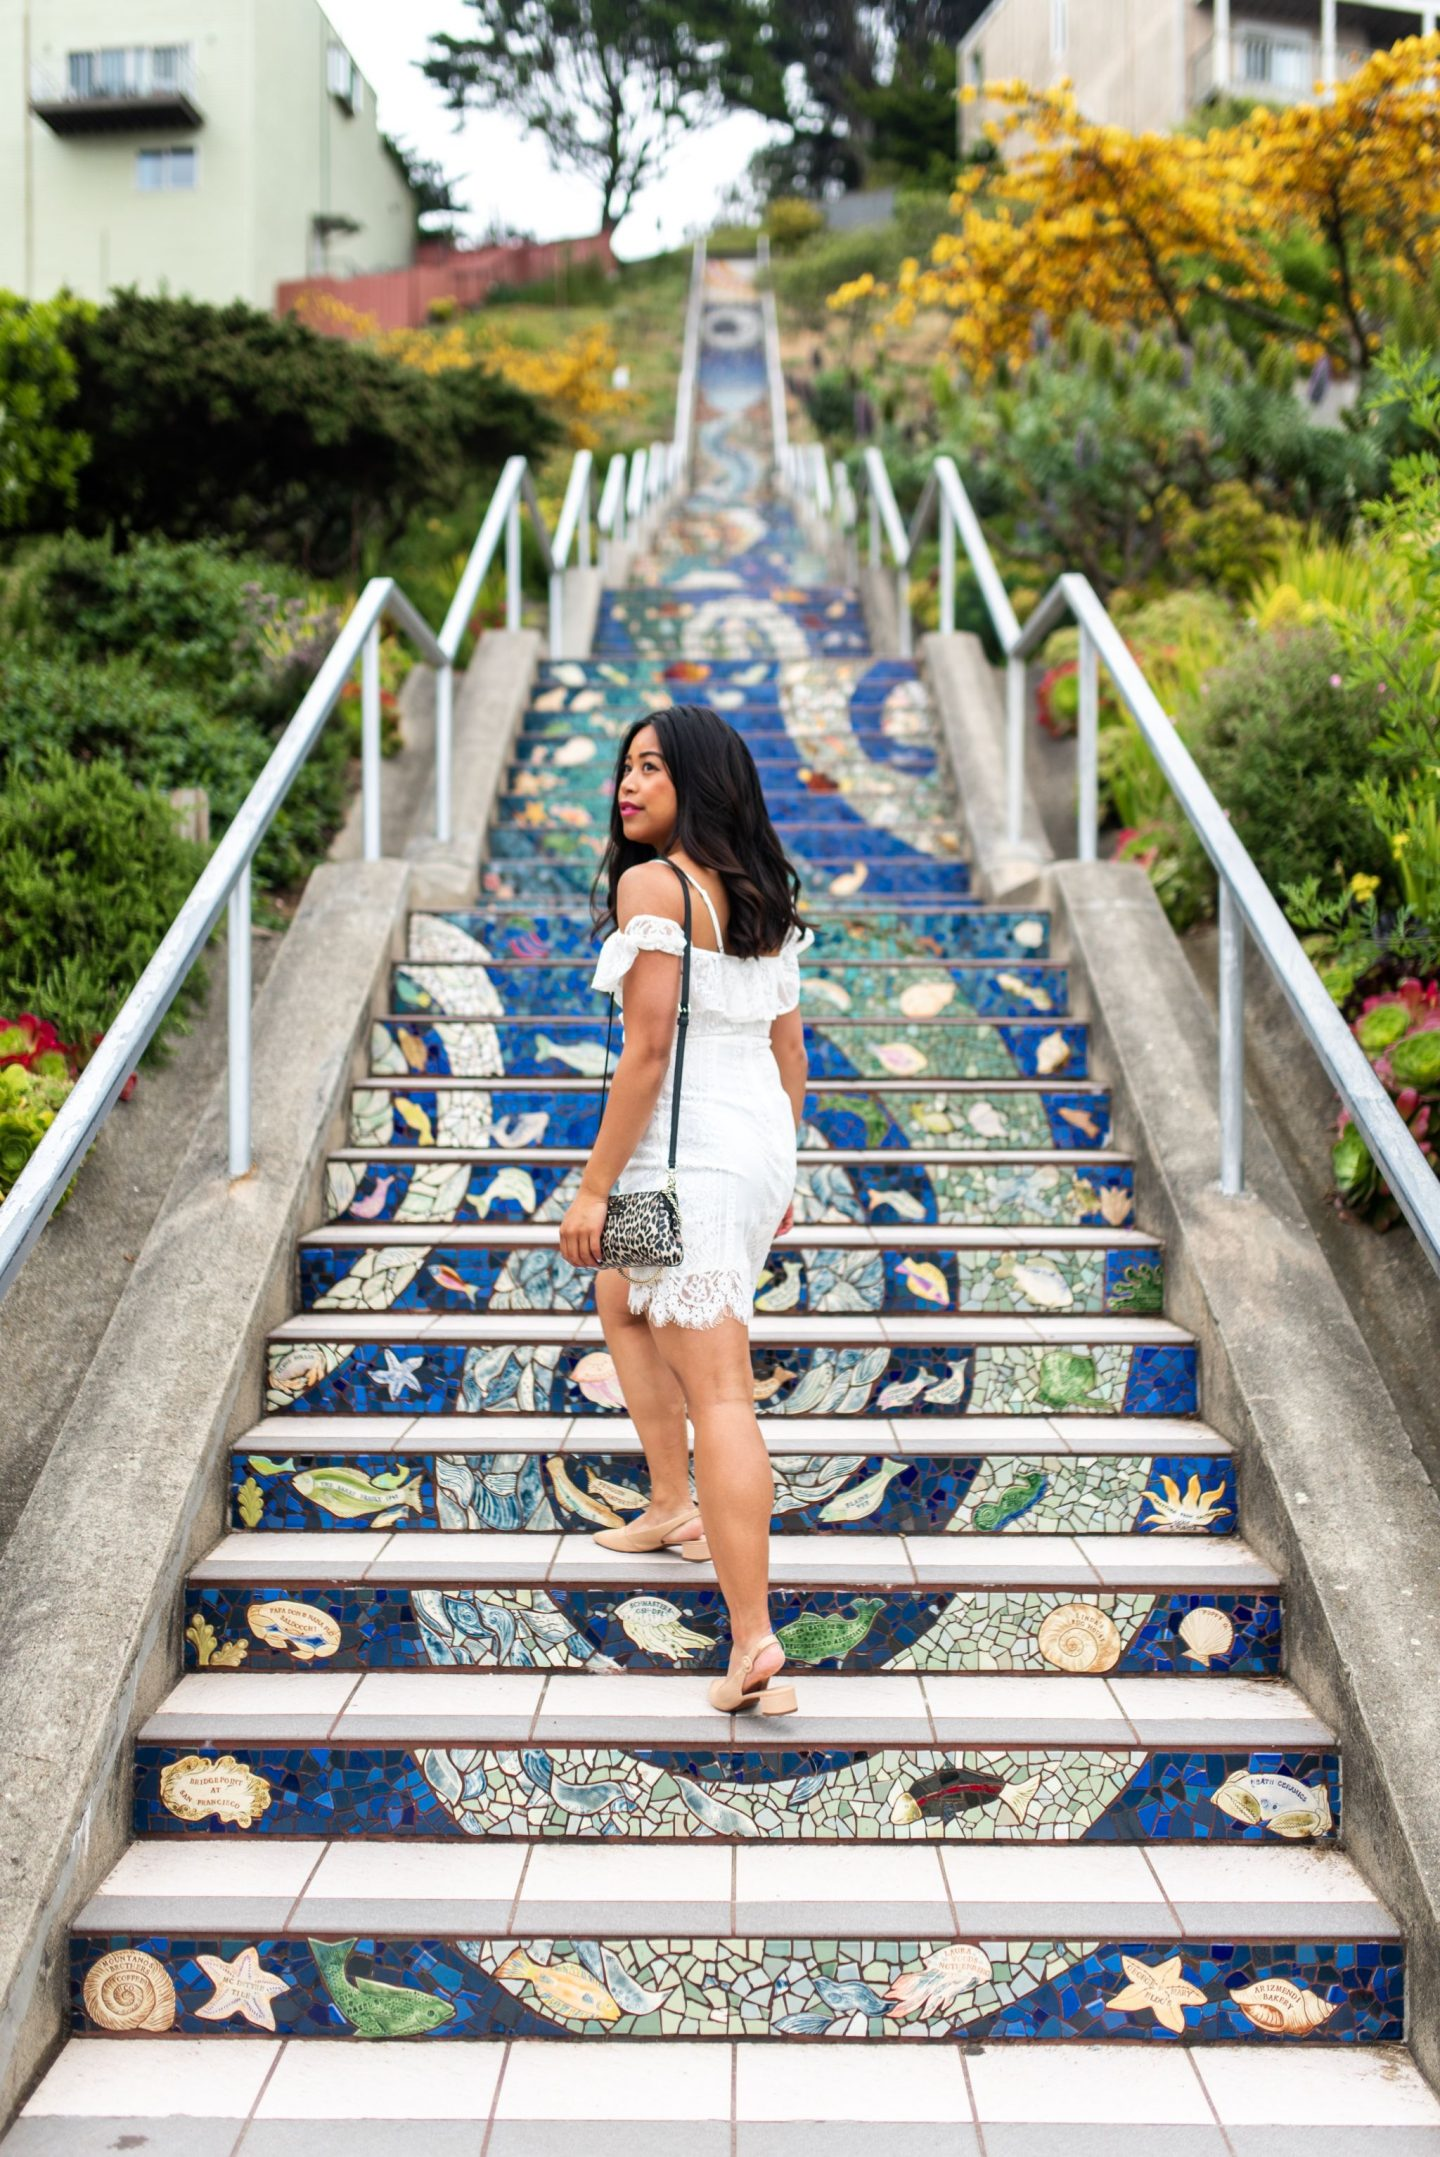 Mosaic Staircase in San Francisco - San Francisco's Most Instagrammable Places